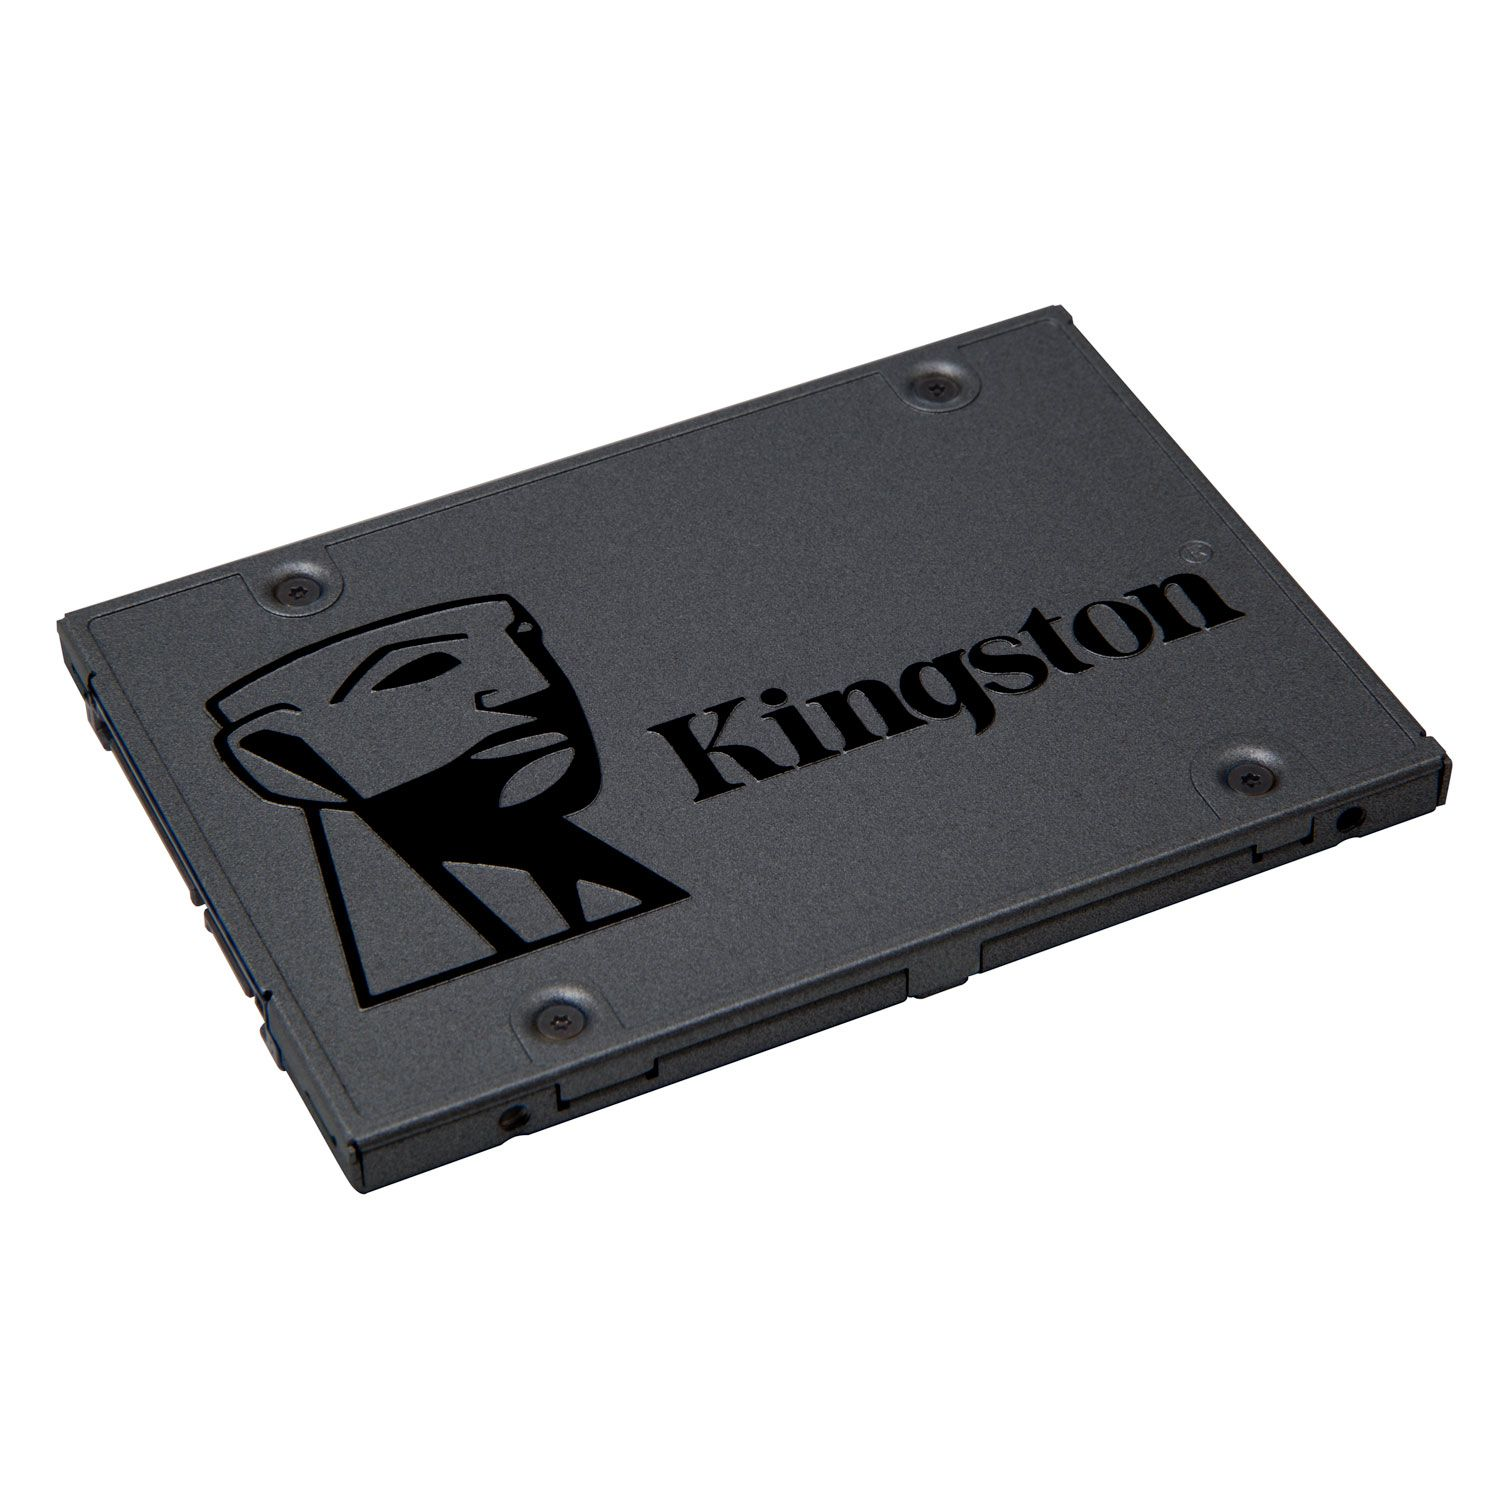 Memória Kingston SSD Plus 120GB A400 500Mb/s